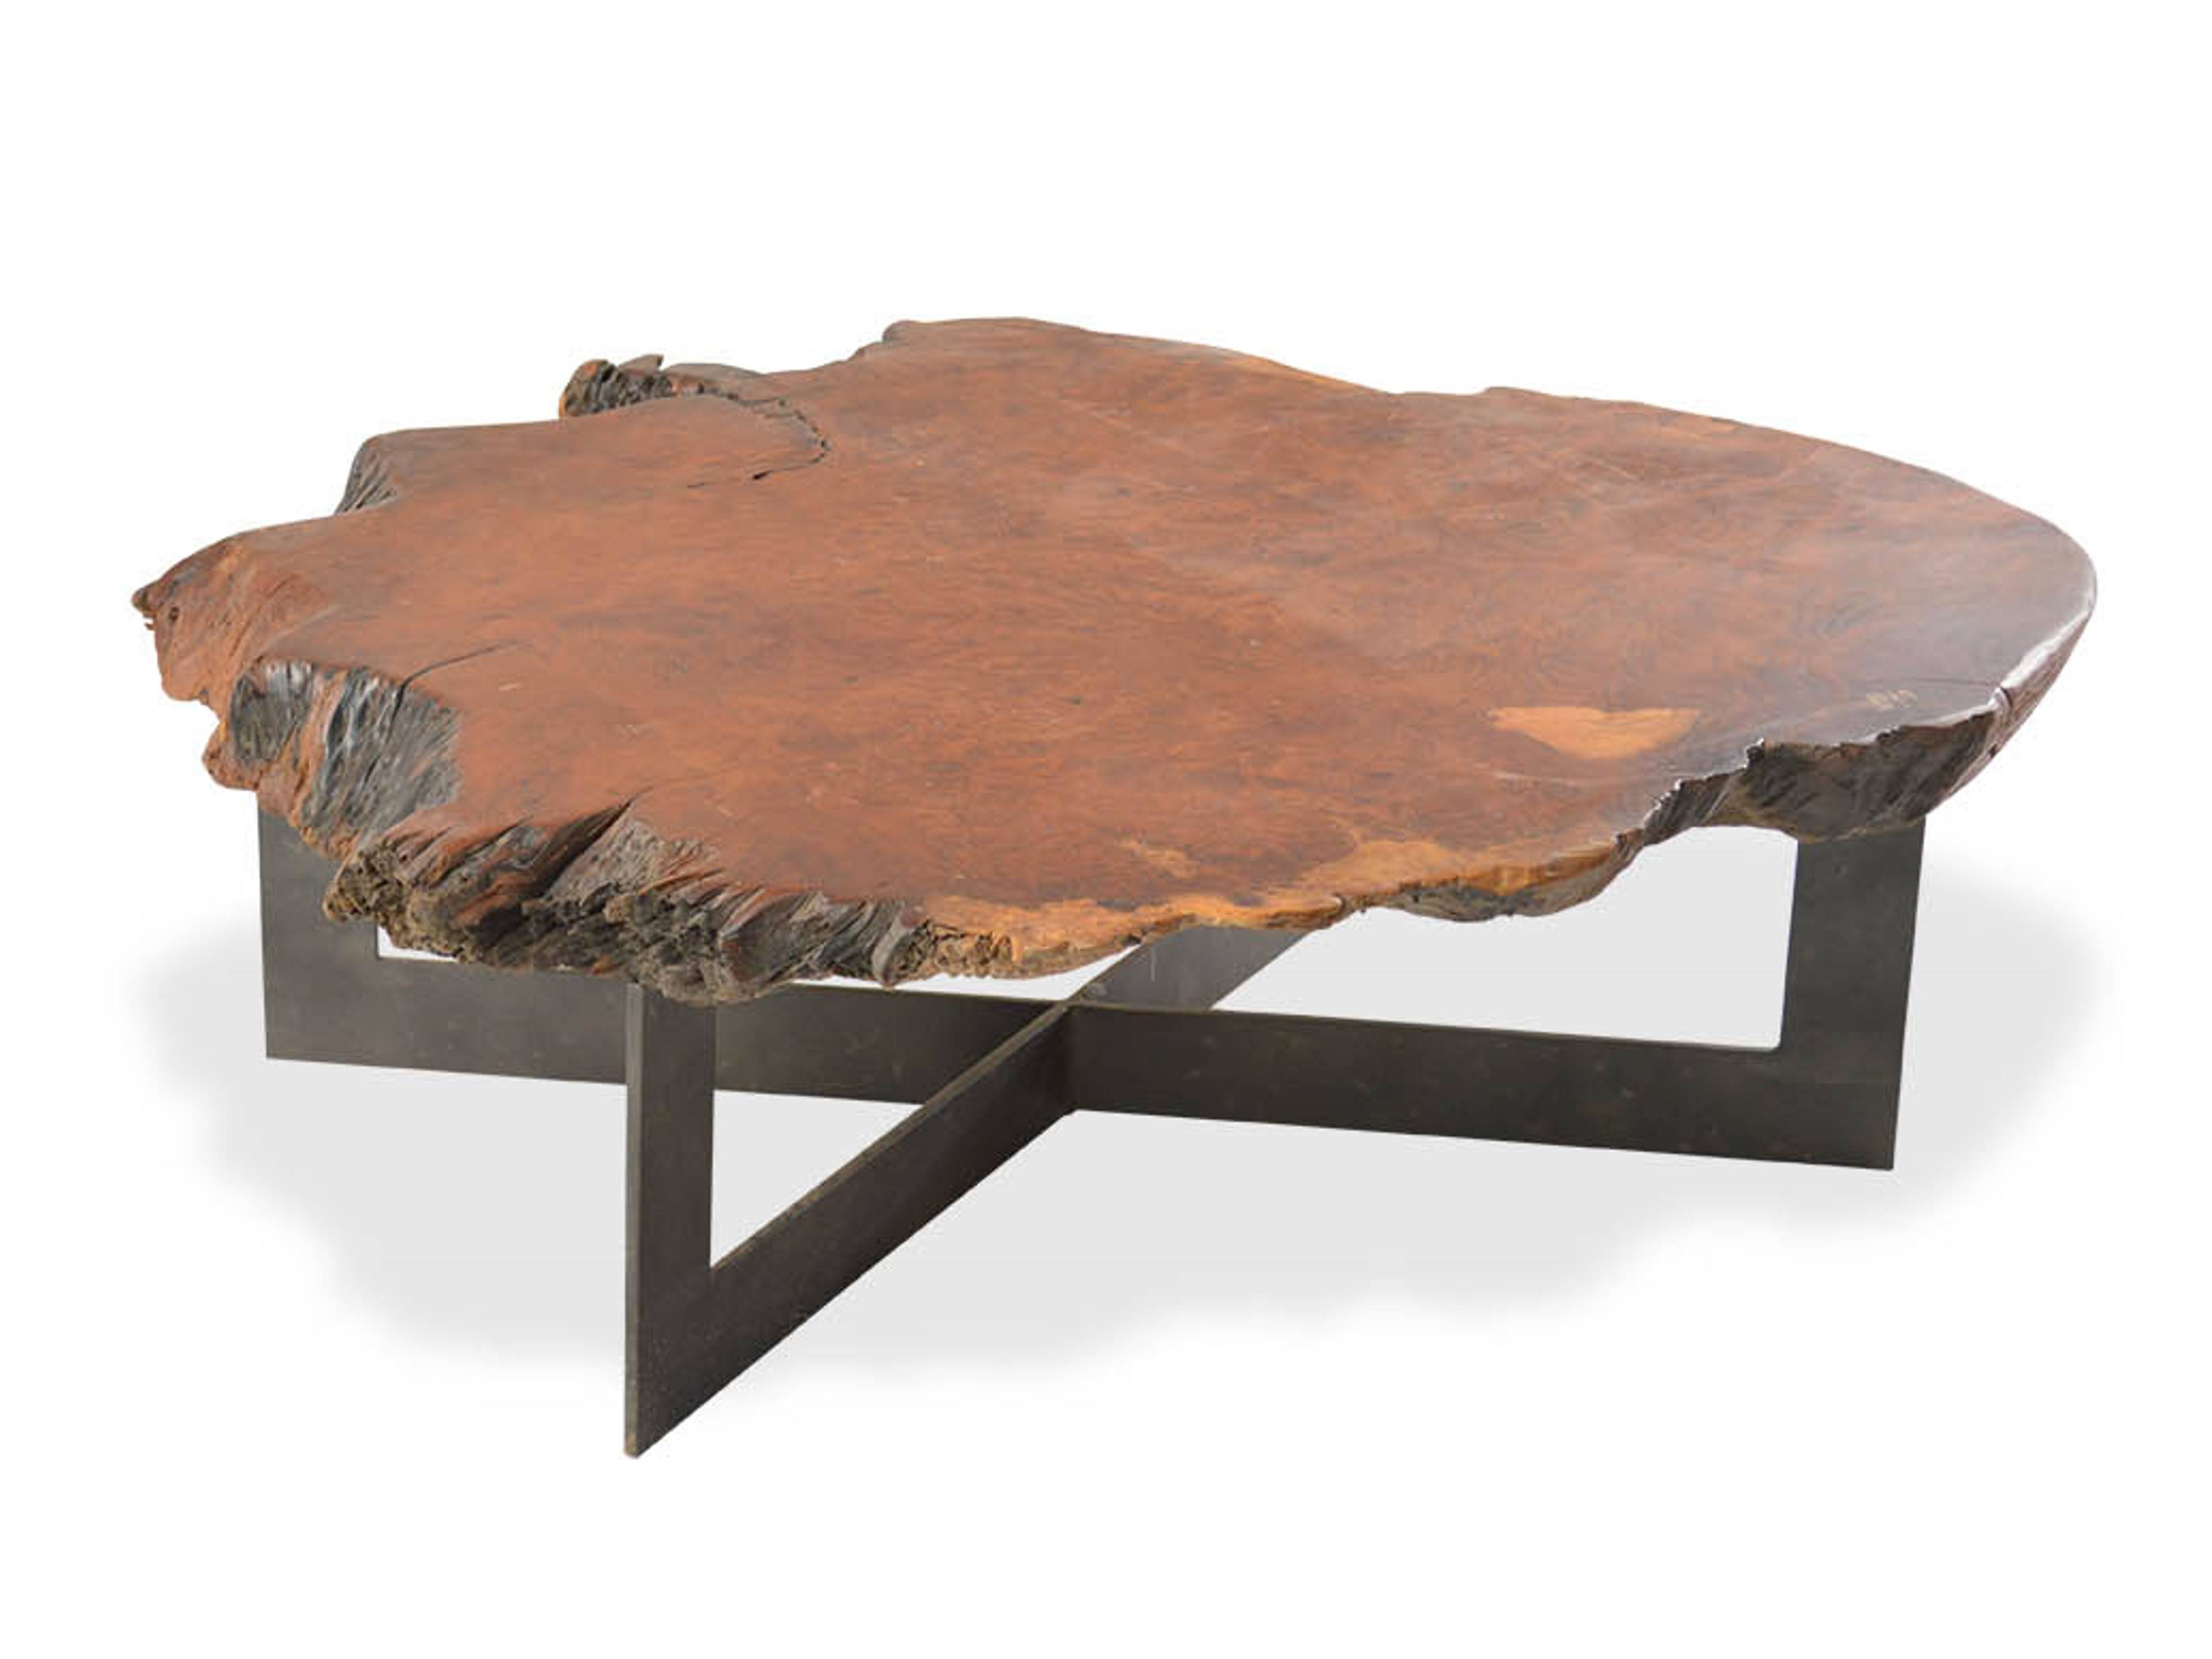 Round Metal And Wood Coffee Table | Coffee Tables Decoration with regard to Round Steel Coffee Tables (Image 23 of 30)